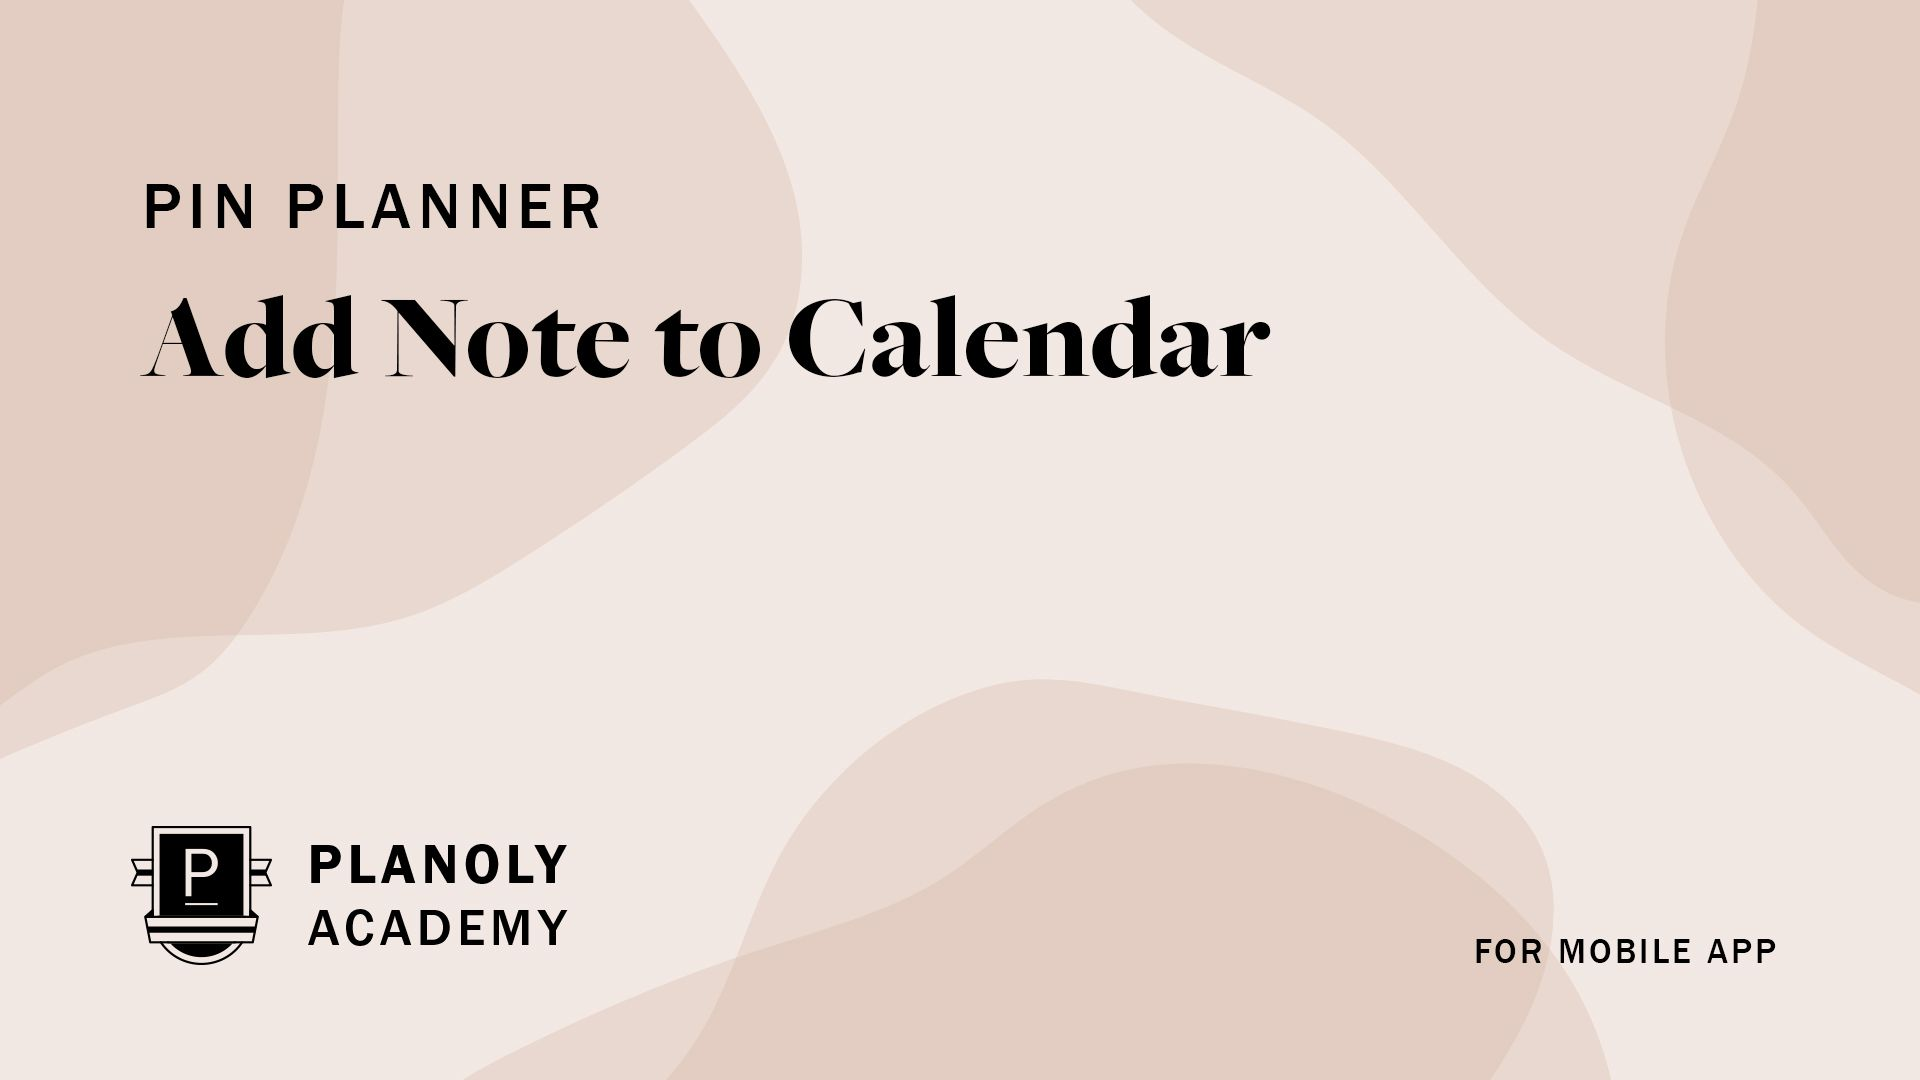 How to Add Note to Calendar